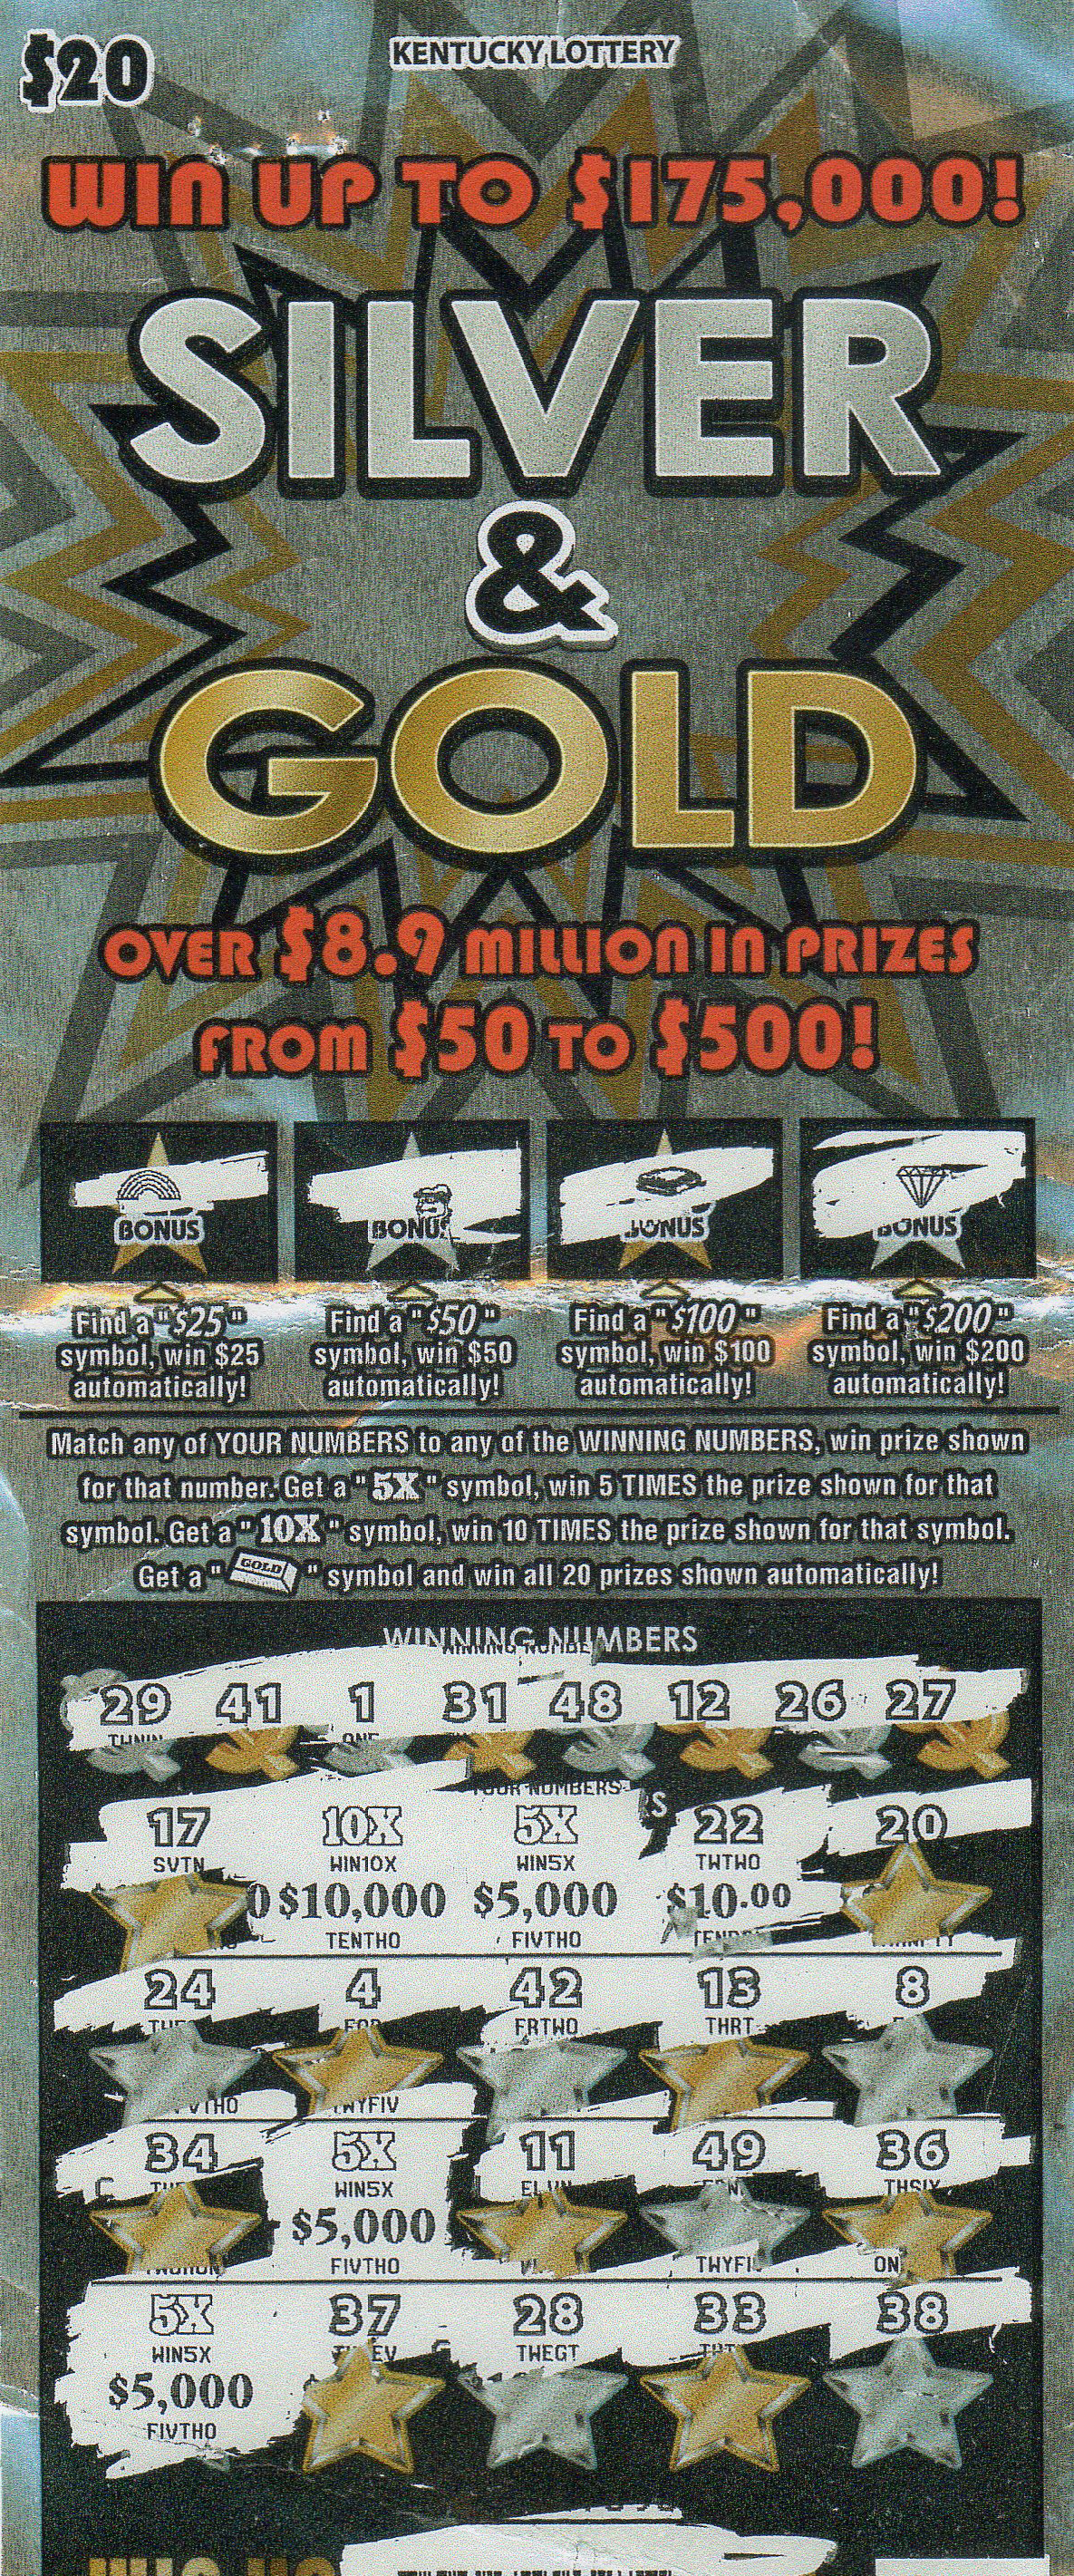 $175,000 Silver & Gold top prize tkt 6-11-18